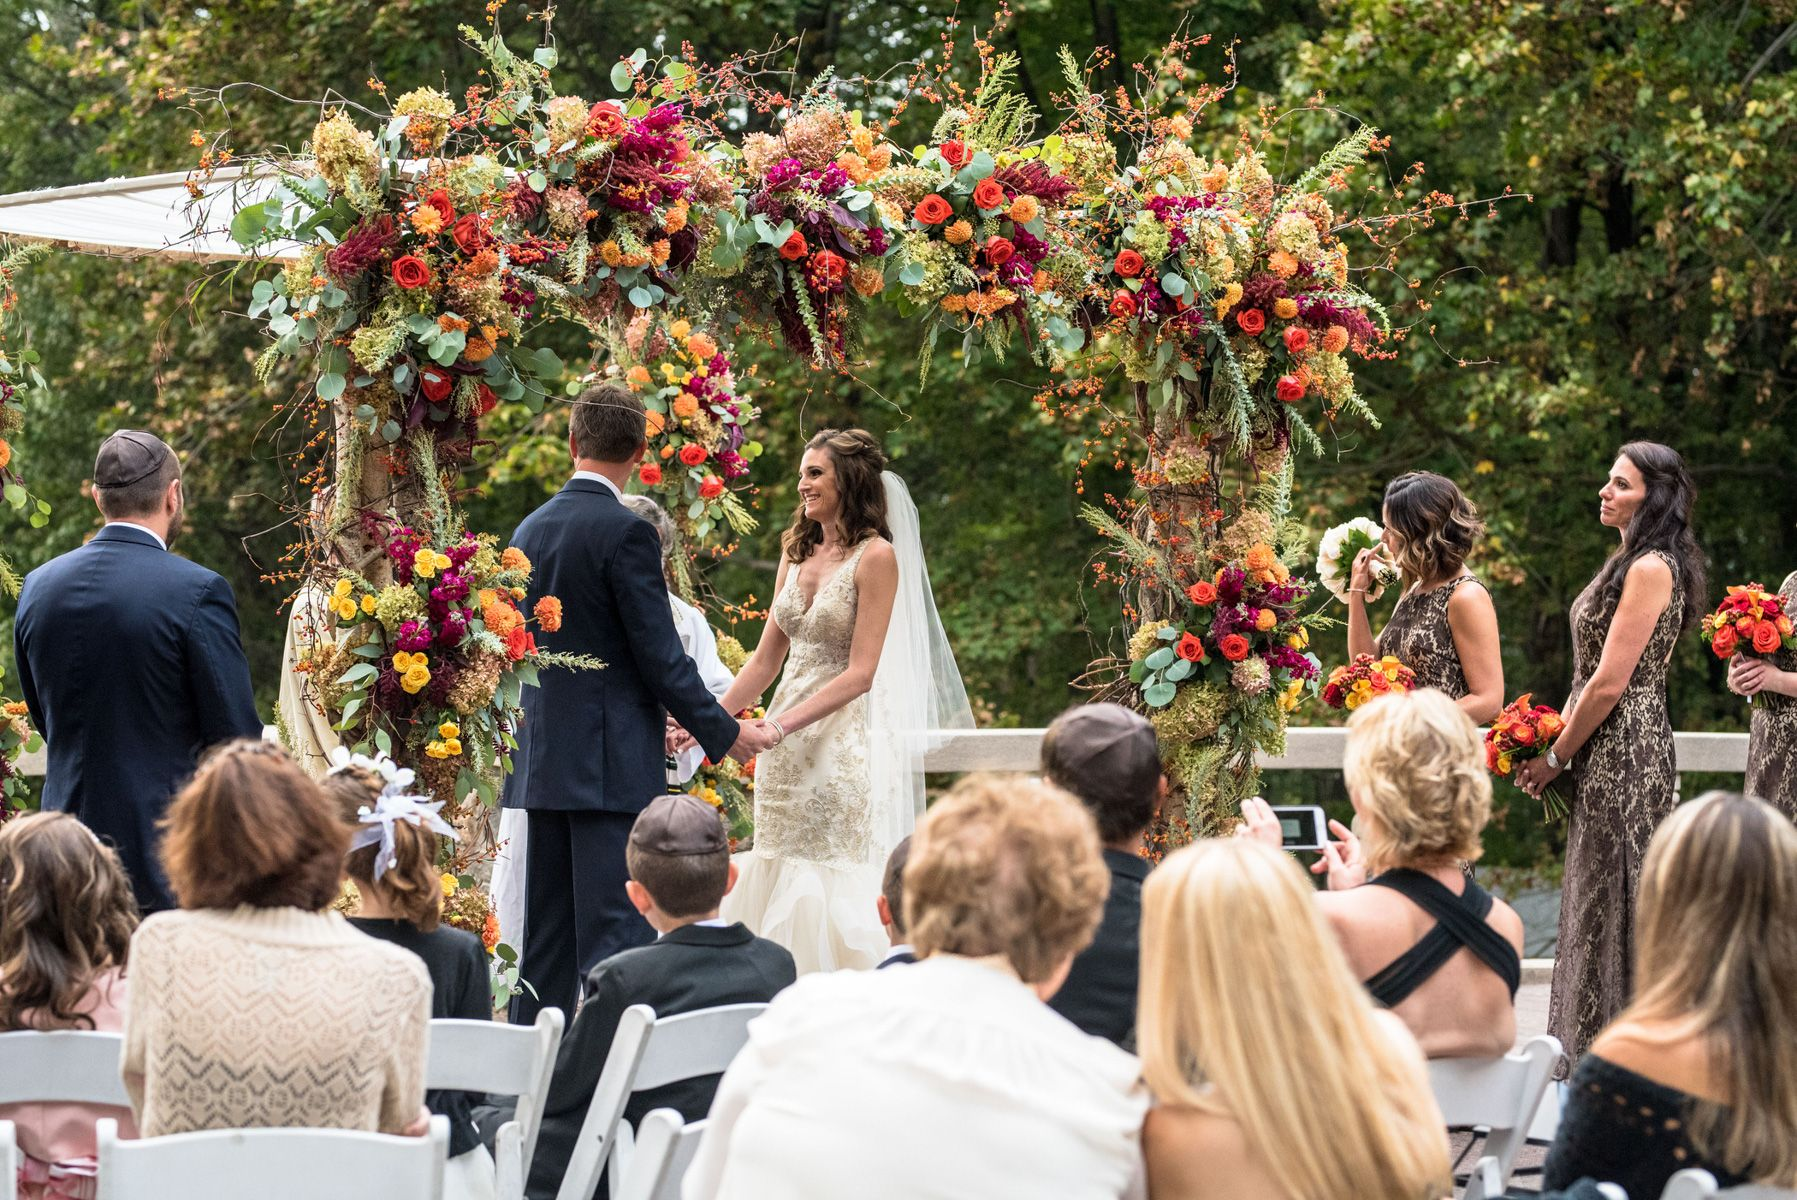 Tappan Wedding Ceremony Under Chuppah